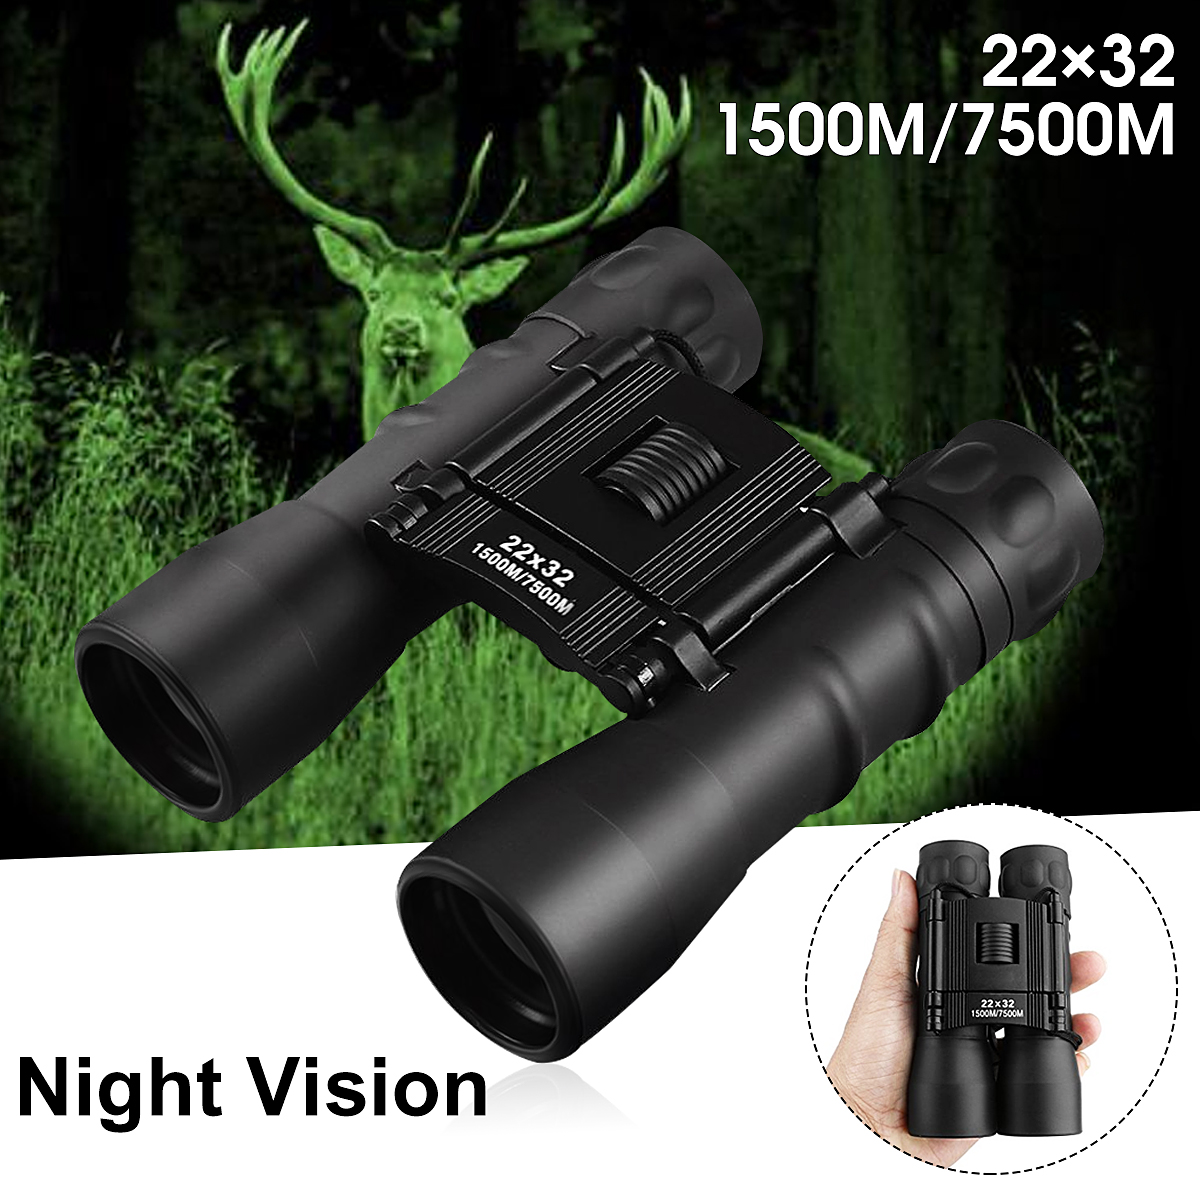 ARCHEER Night Vision Binoculars Telescope Portable 22x32 Magnification 7500M Zoomable Folding Binoculars Telescope for Day and Night Bird Watching Hunting Travelling Sightseeing